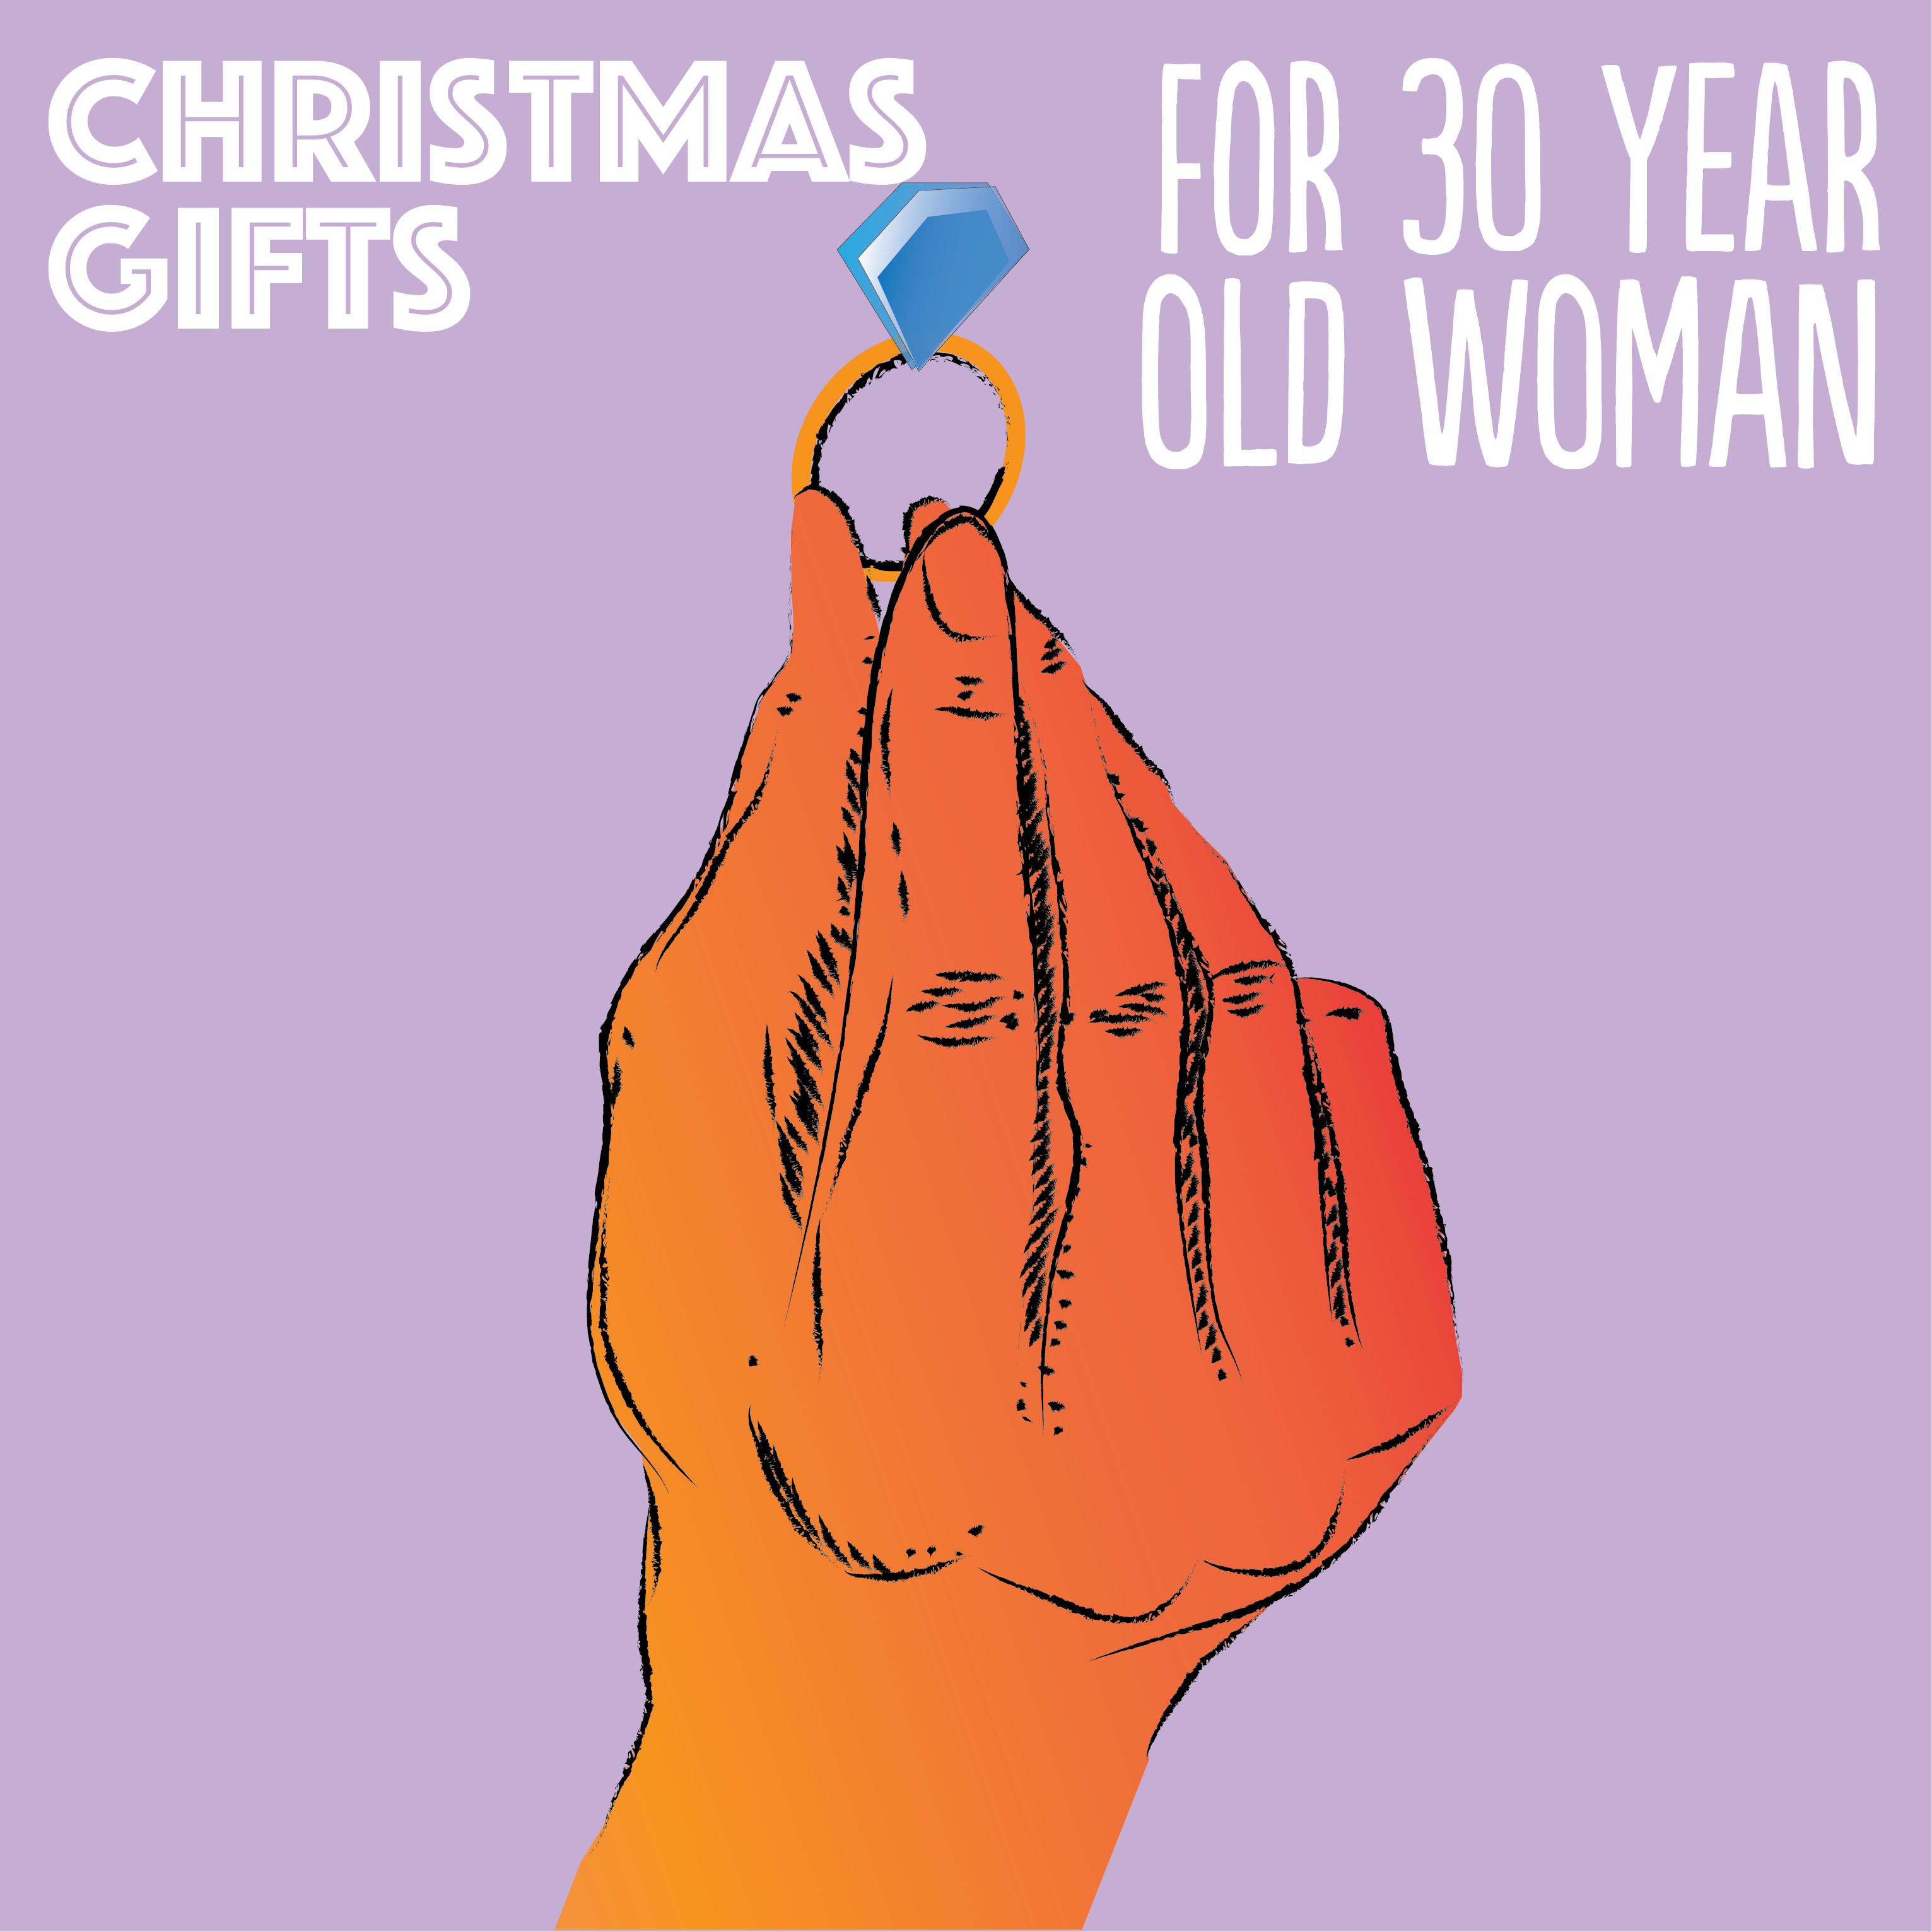 Christmas Gifts For The 30 Year Old Woman